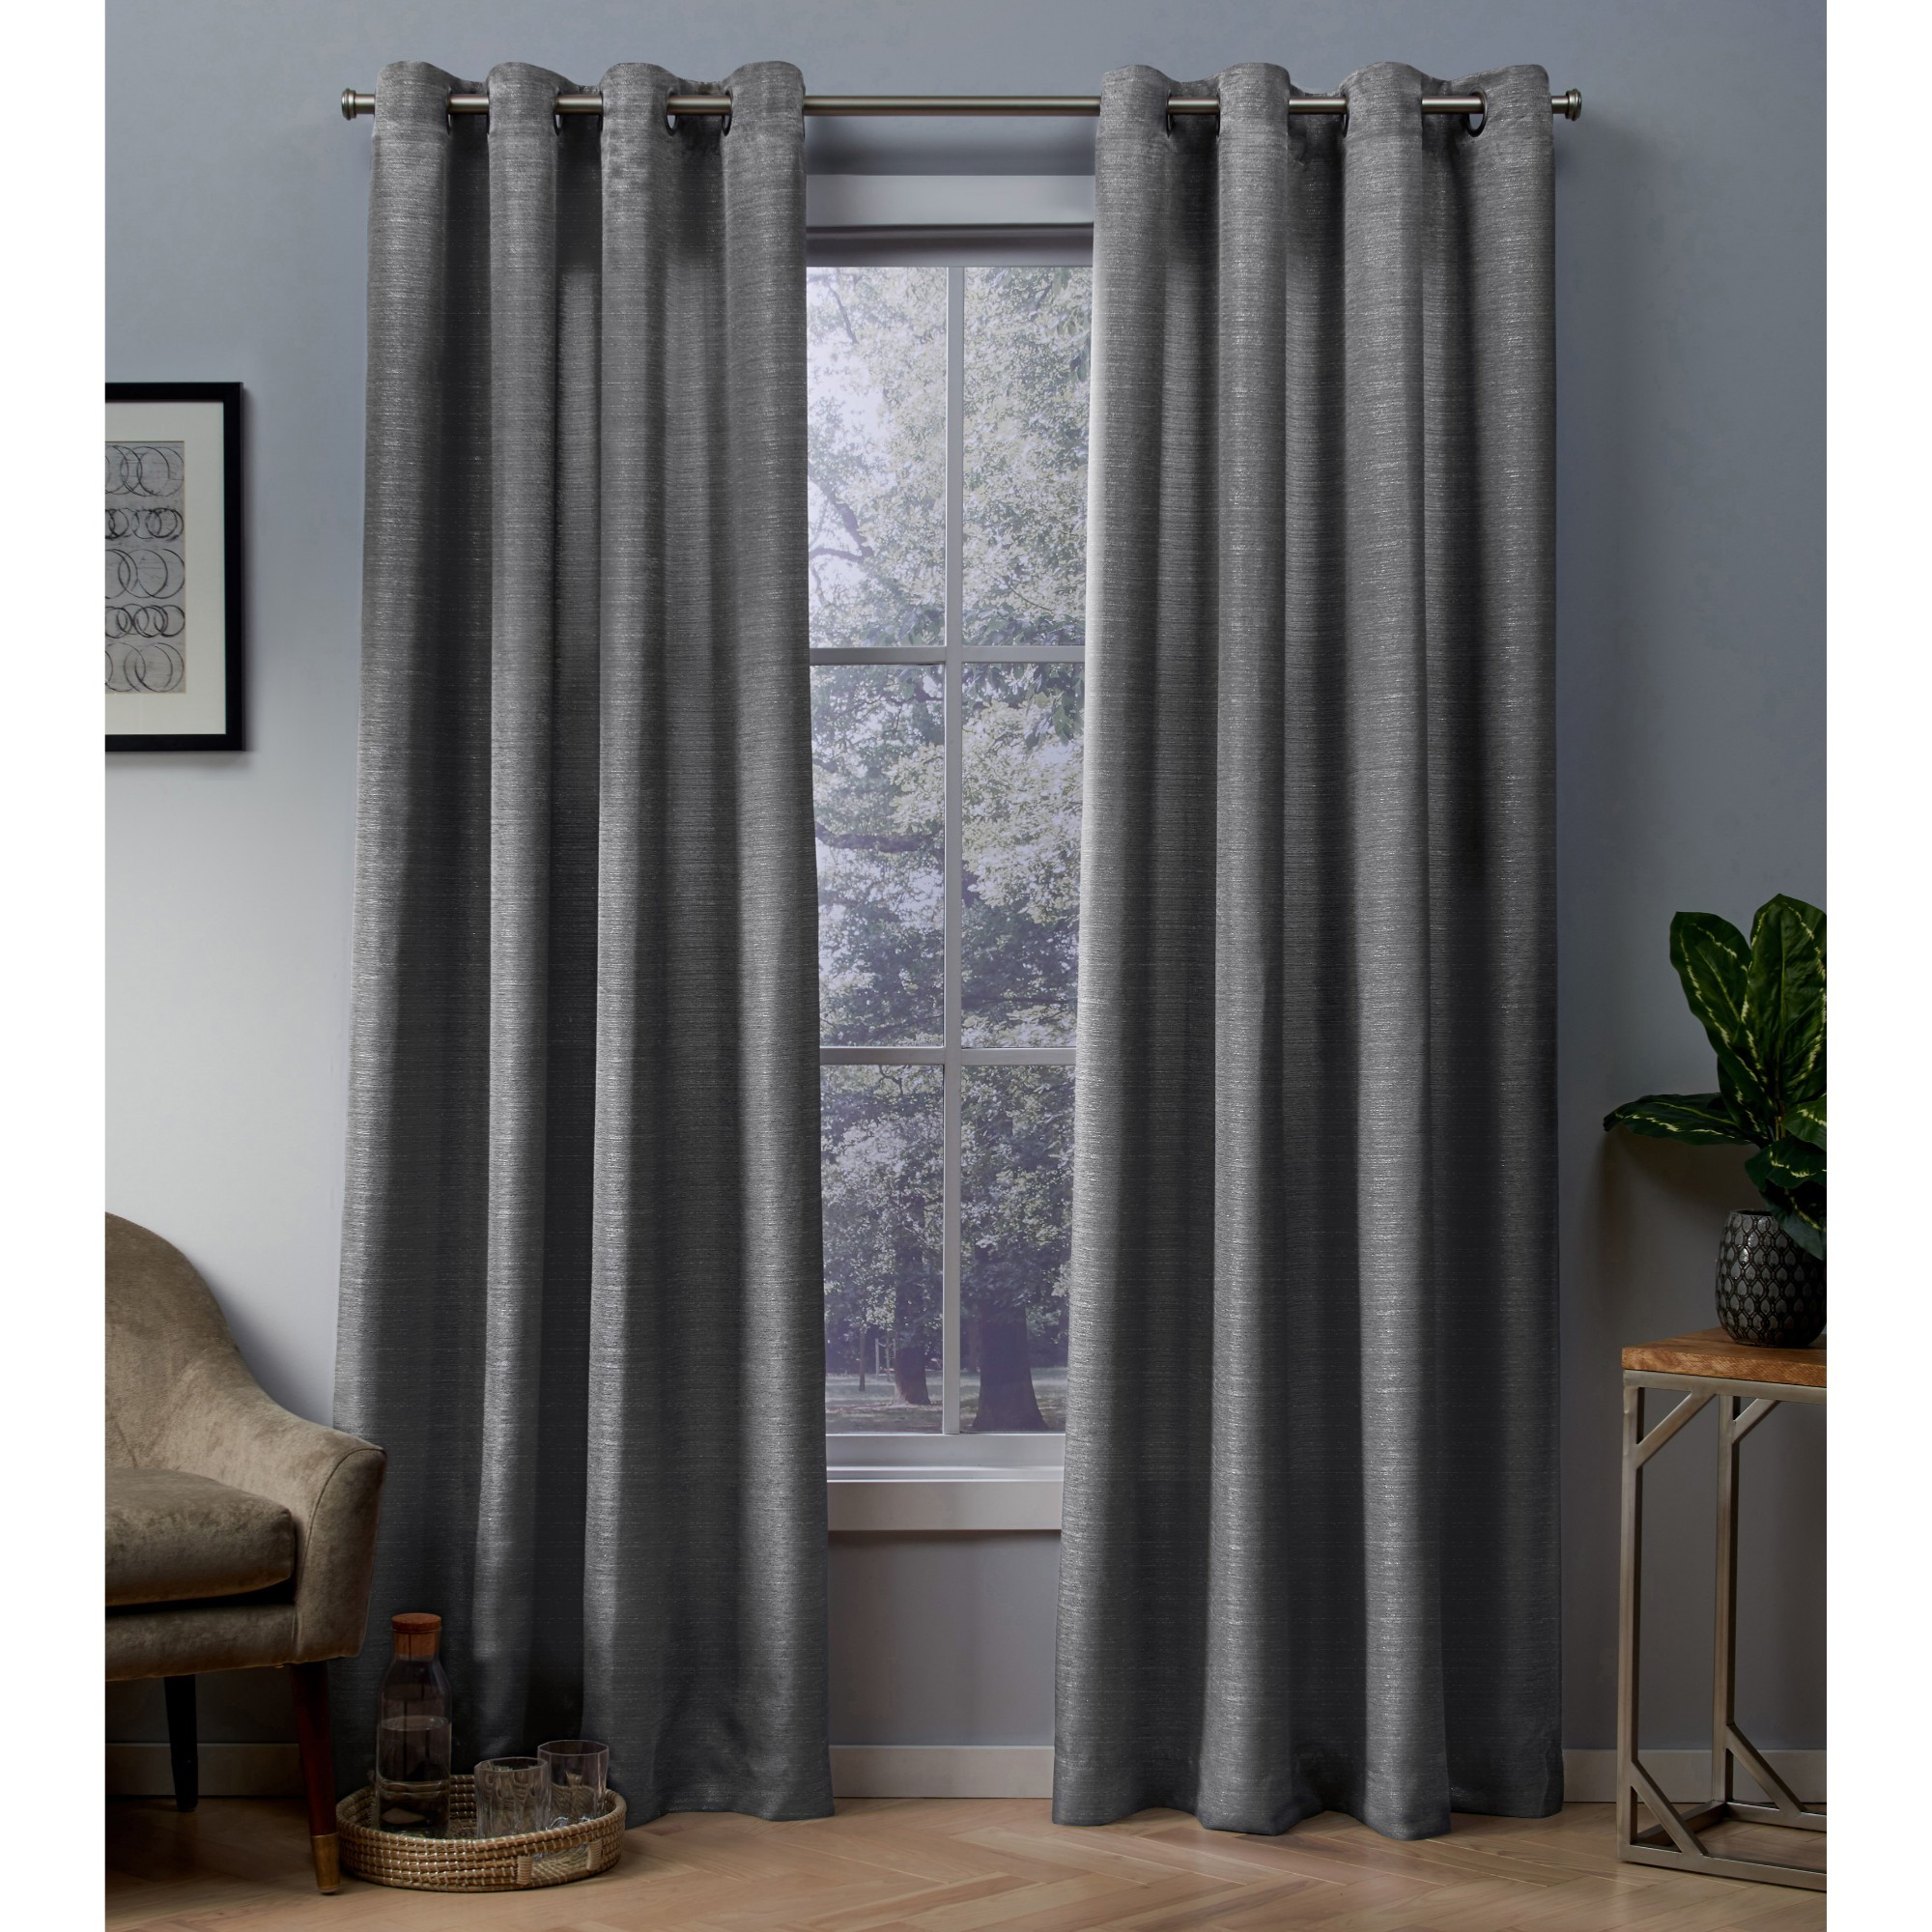 Exclusive Home Curtains 2 Pack Whitby Metallic Slub Yarn Textured